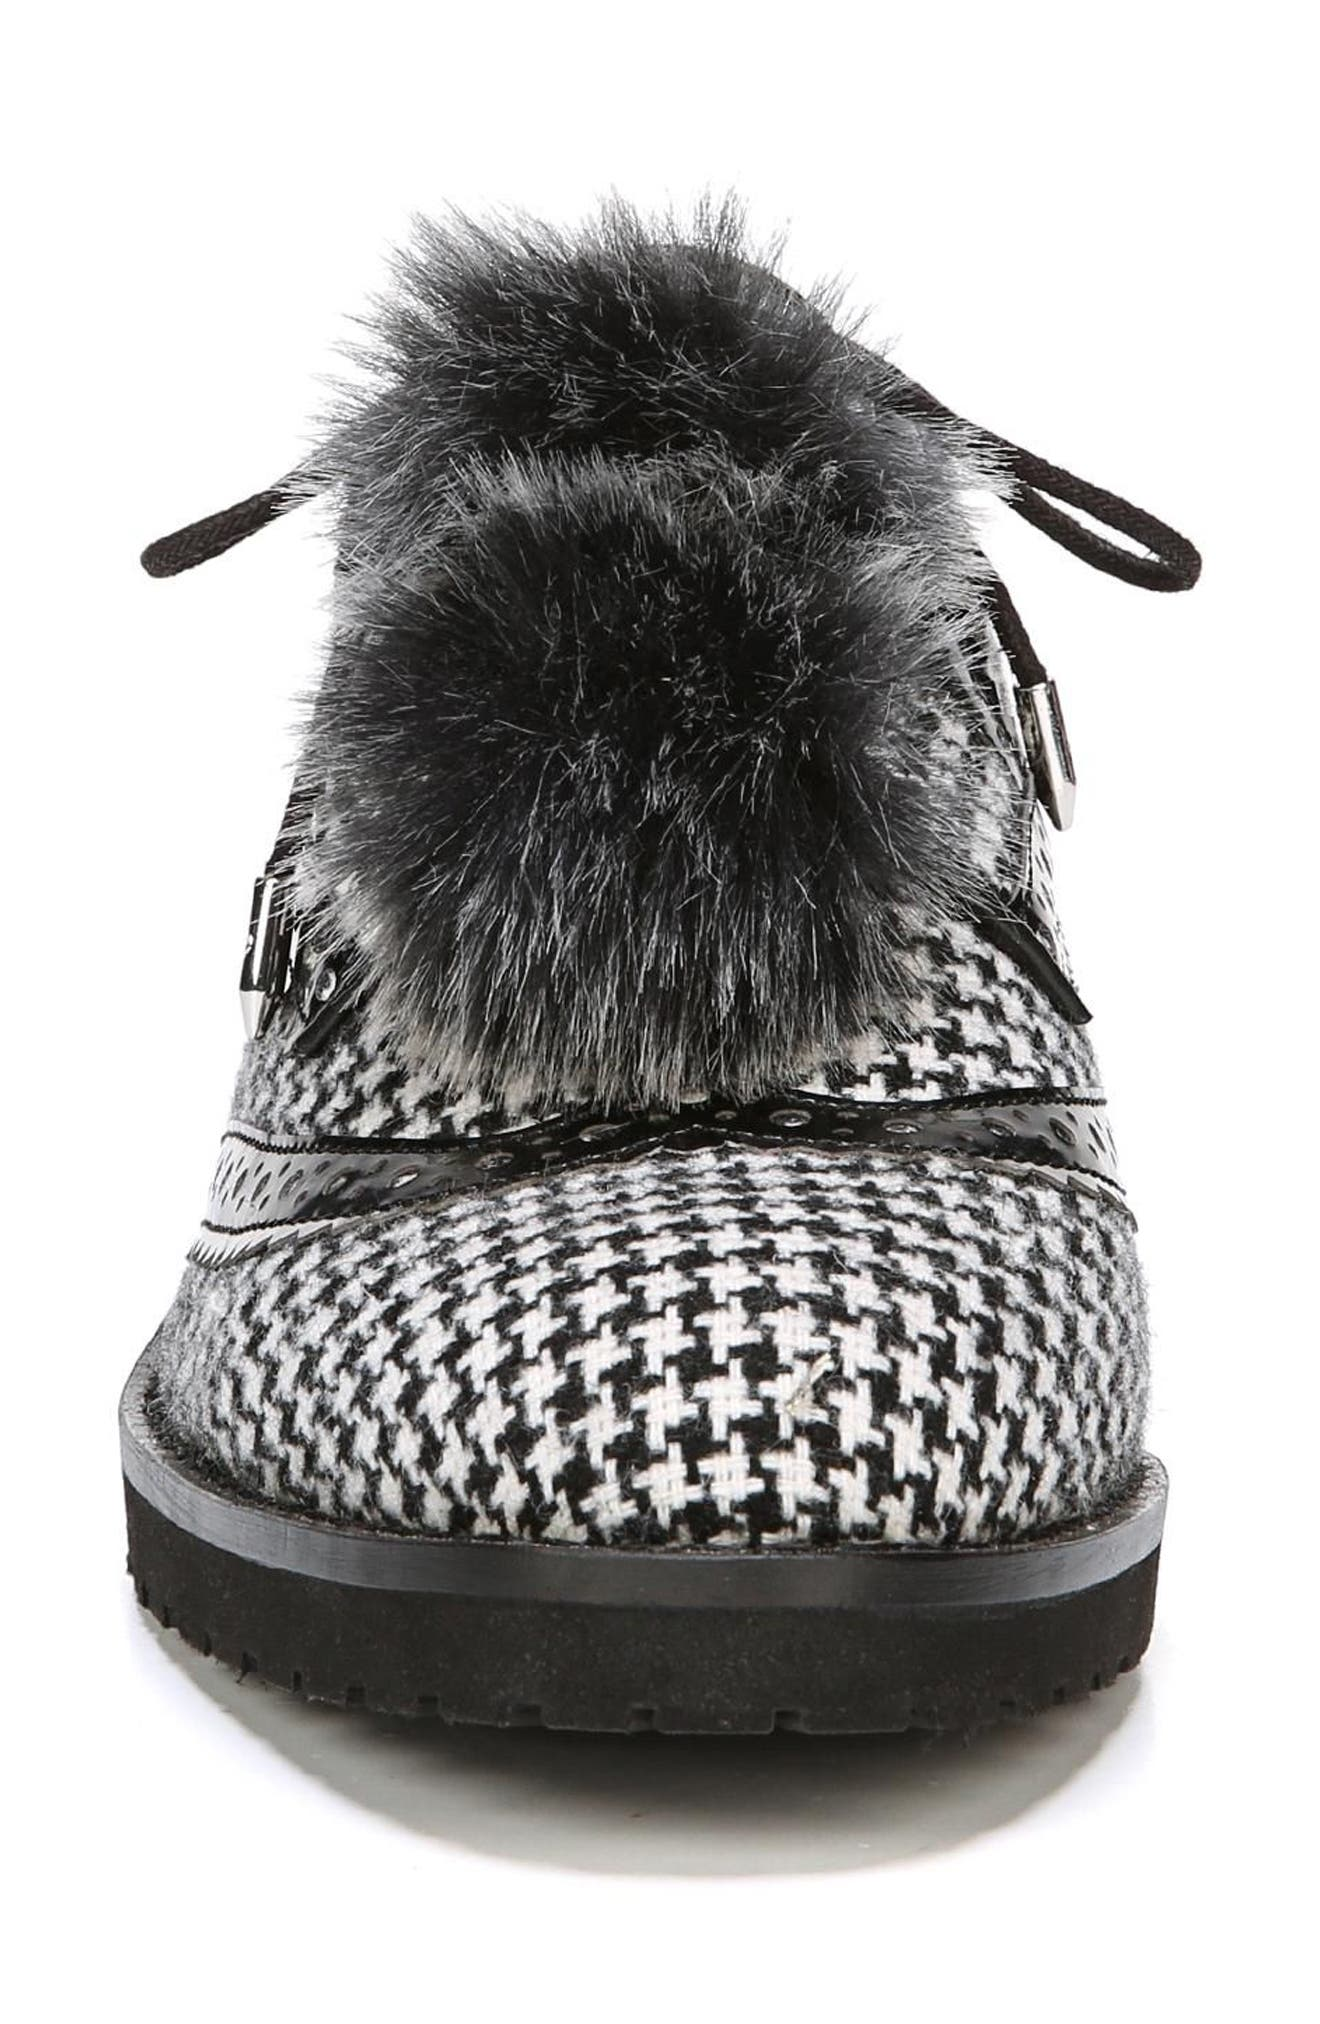 Dahl Oxford with Faux Fur Pompom,                             Alternate thumbnail 4, color,                             Black/ White Houndstooth